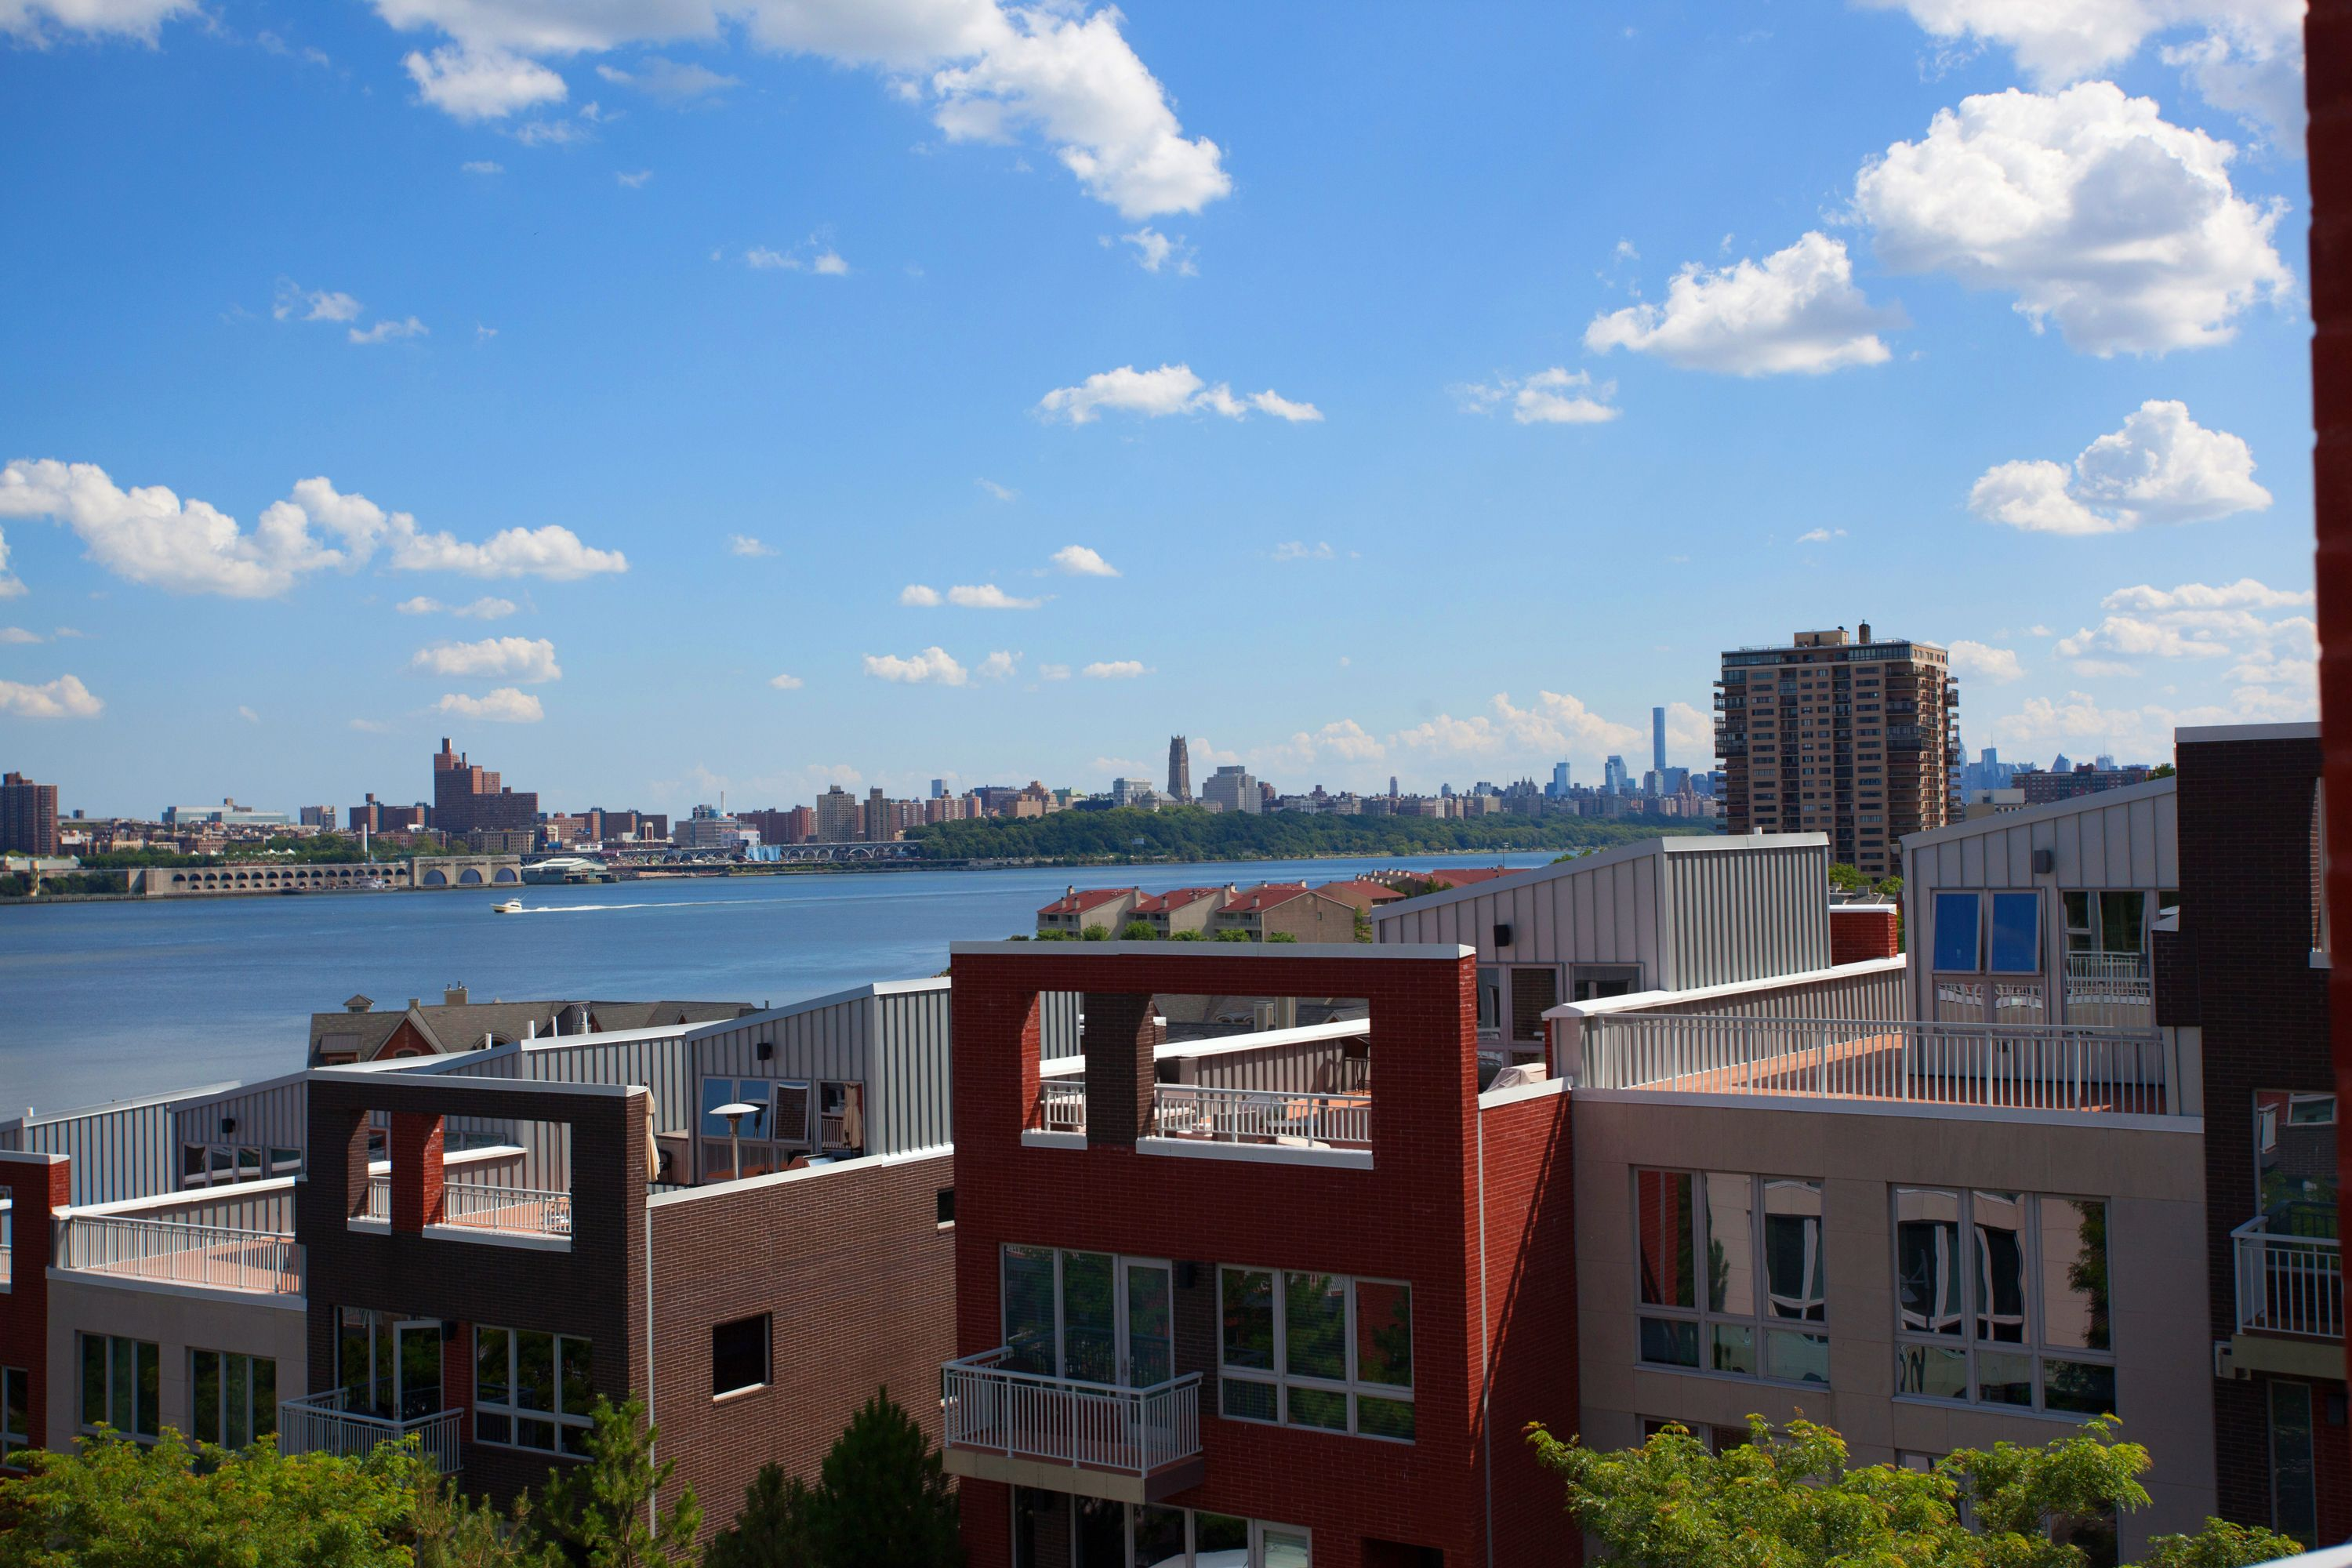 Townhouse for Sale at Vela Townhouse 16 Vela Way Edgewater, New Jersey 07020 United States